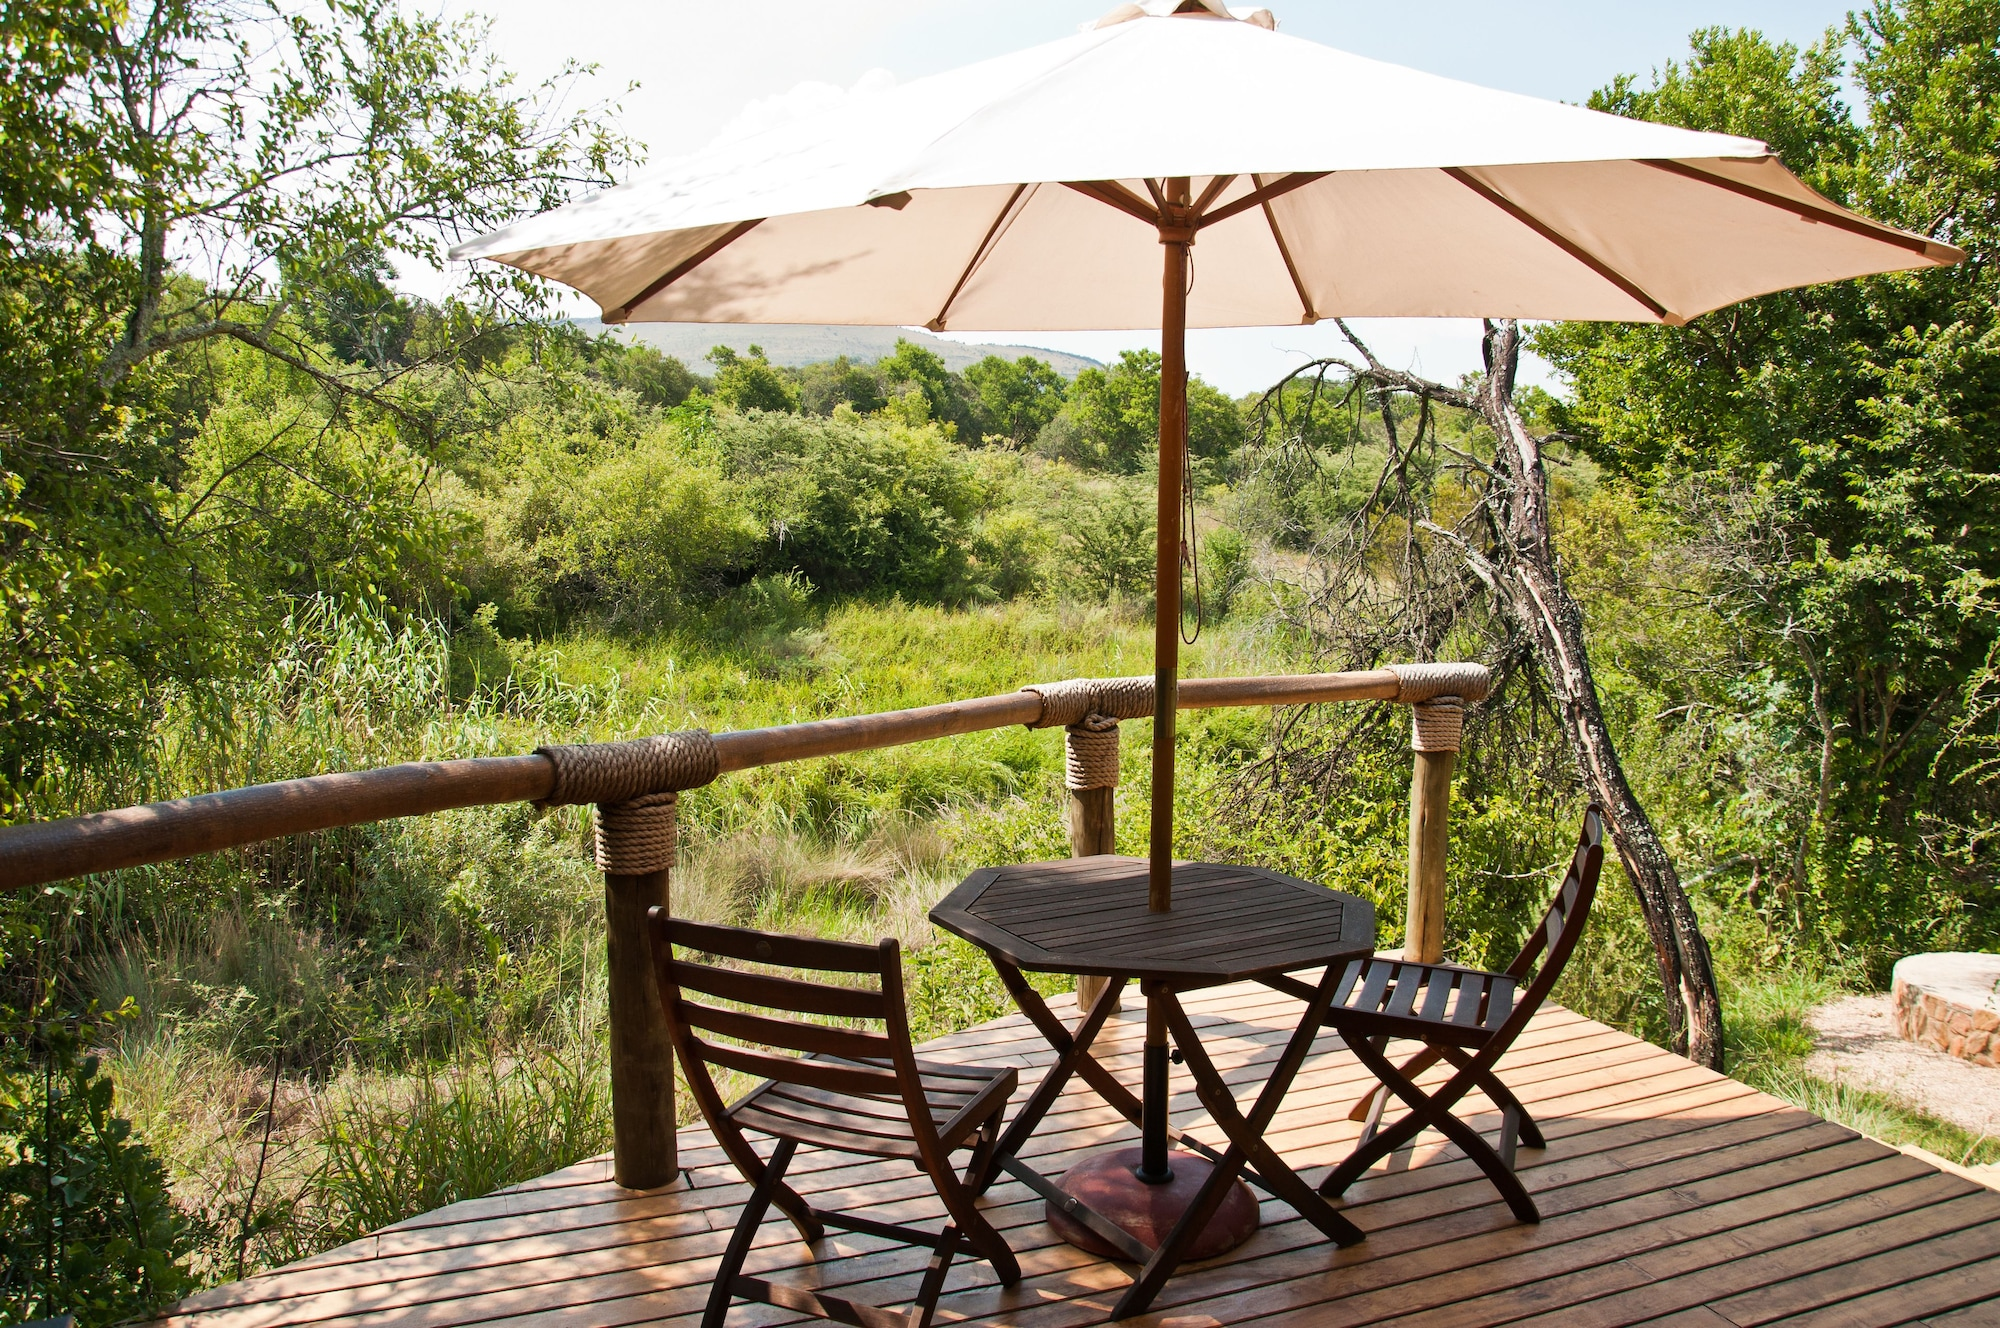 B'sorah Luxury Tented Camp, Bojanala